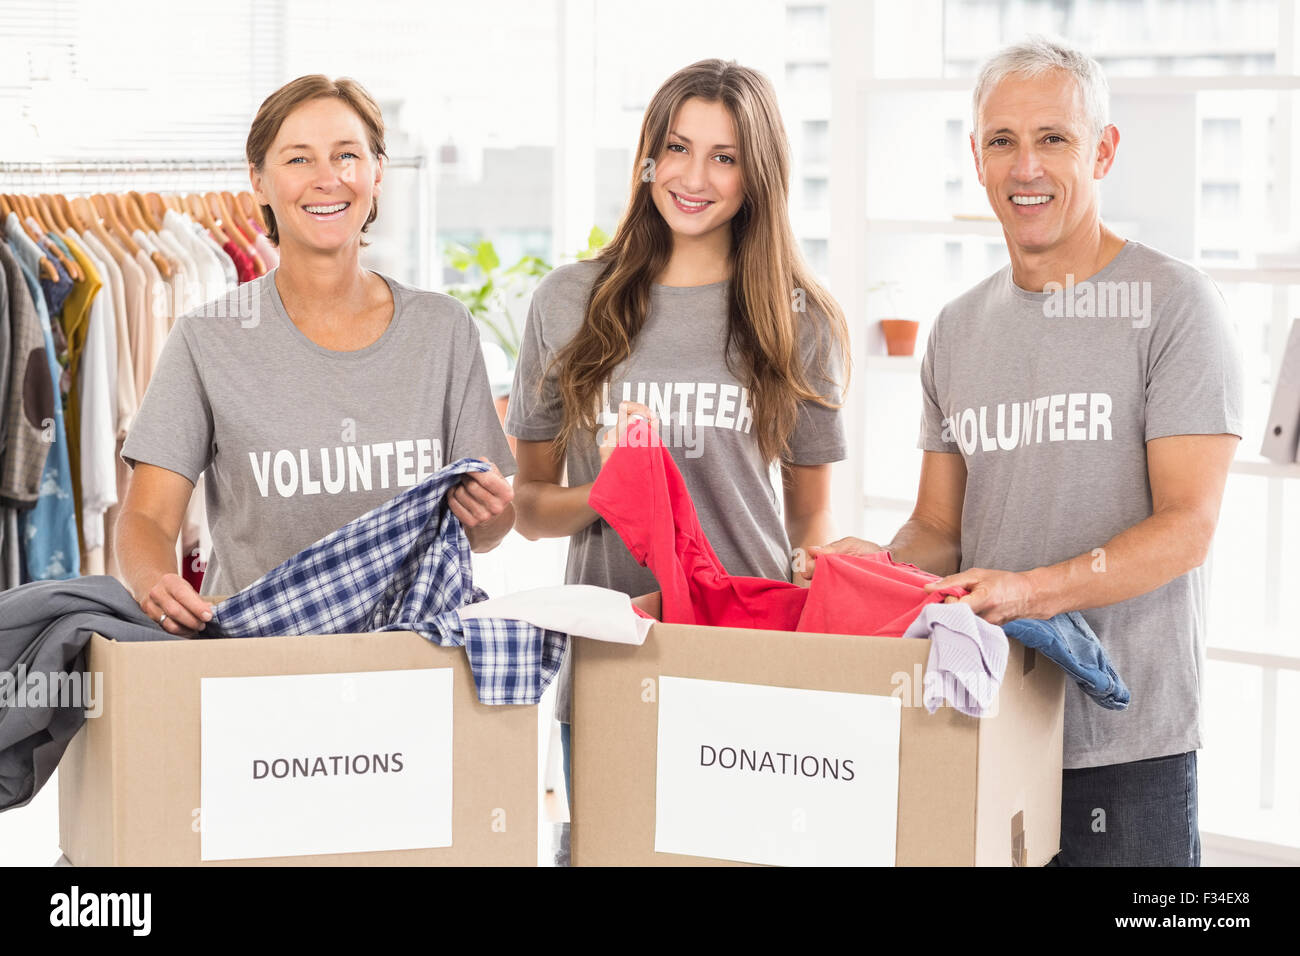 Concerned business people with donation boxes - Stock Image